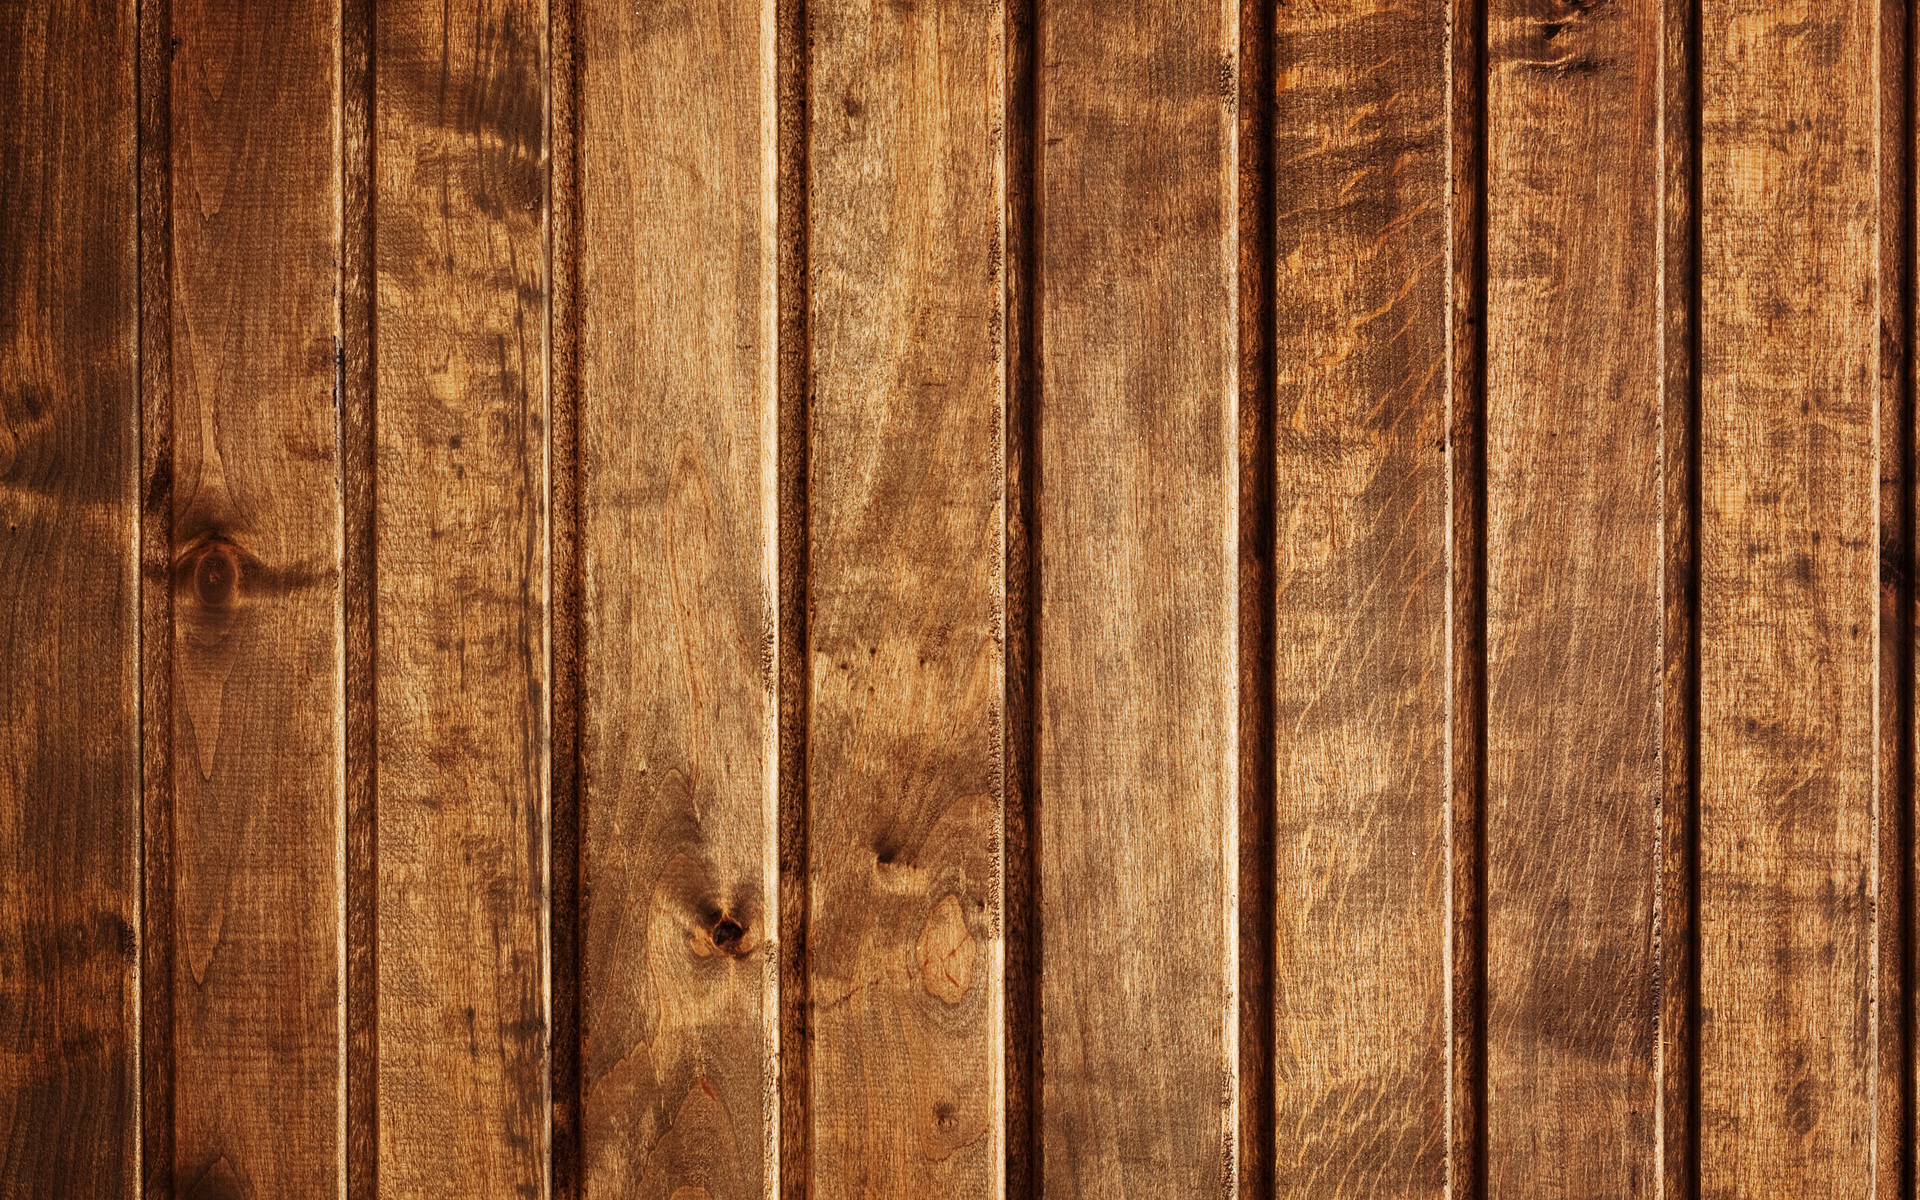 Wood Patterned Wallpaper